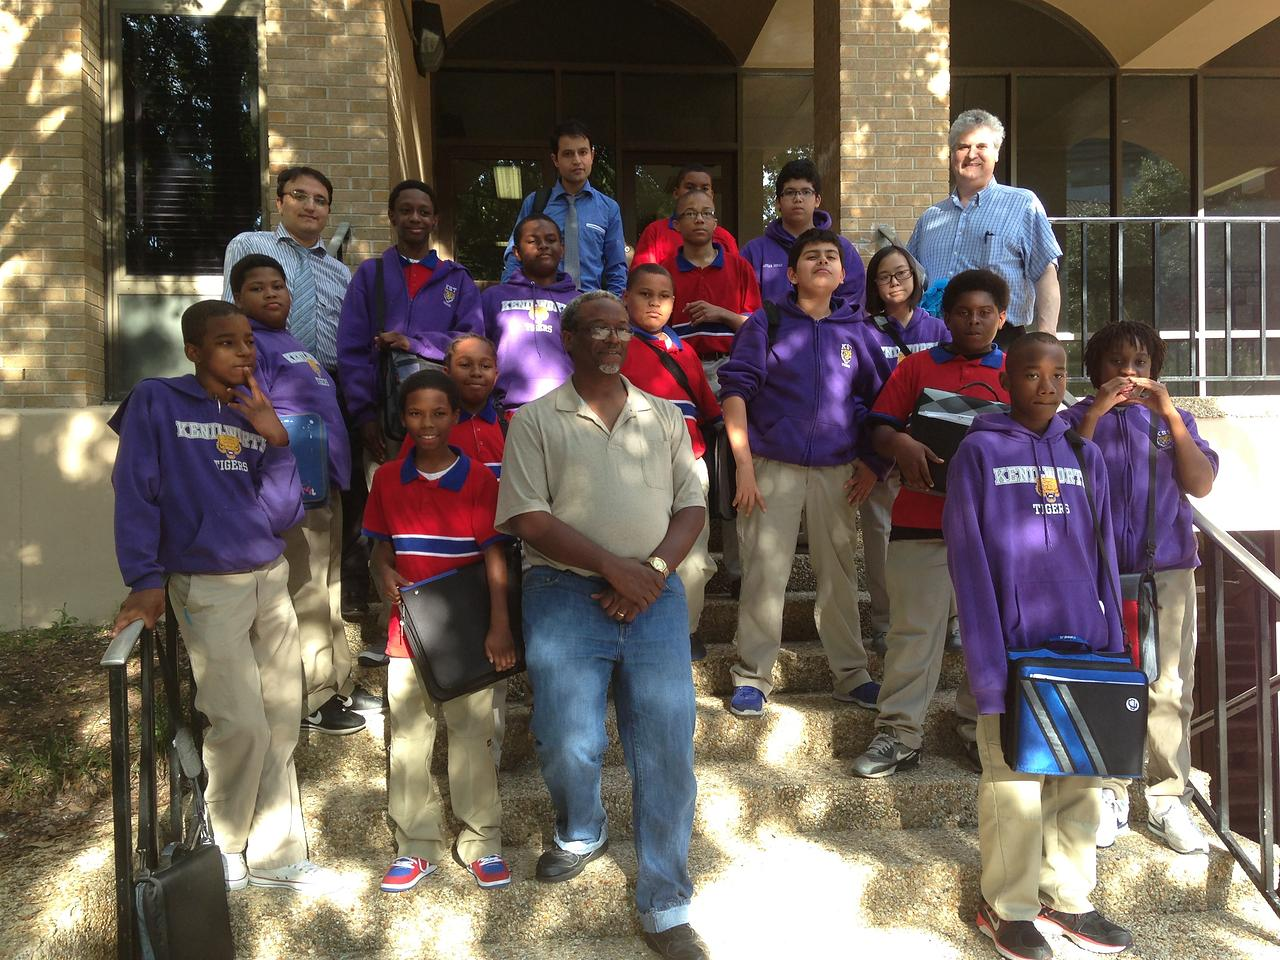 The Math Circle of the Kenilworth Science and Technology Middle School hosted at LSU